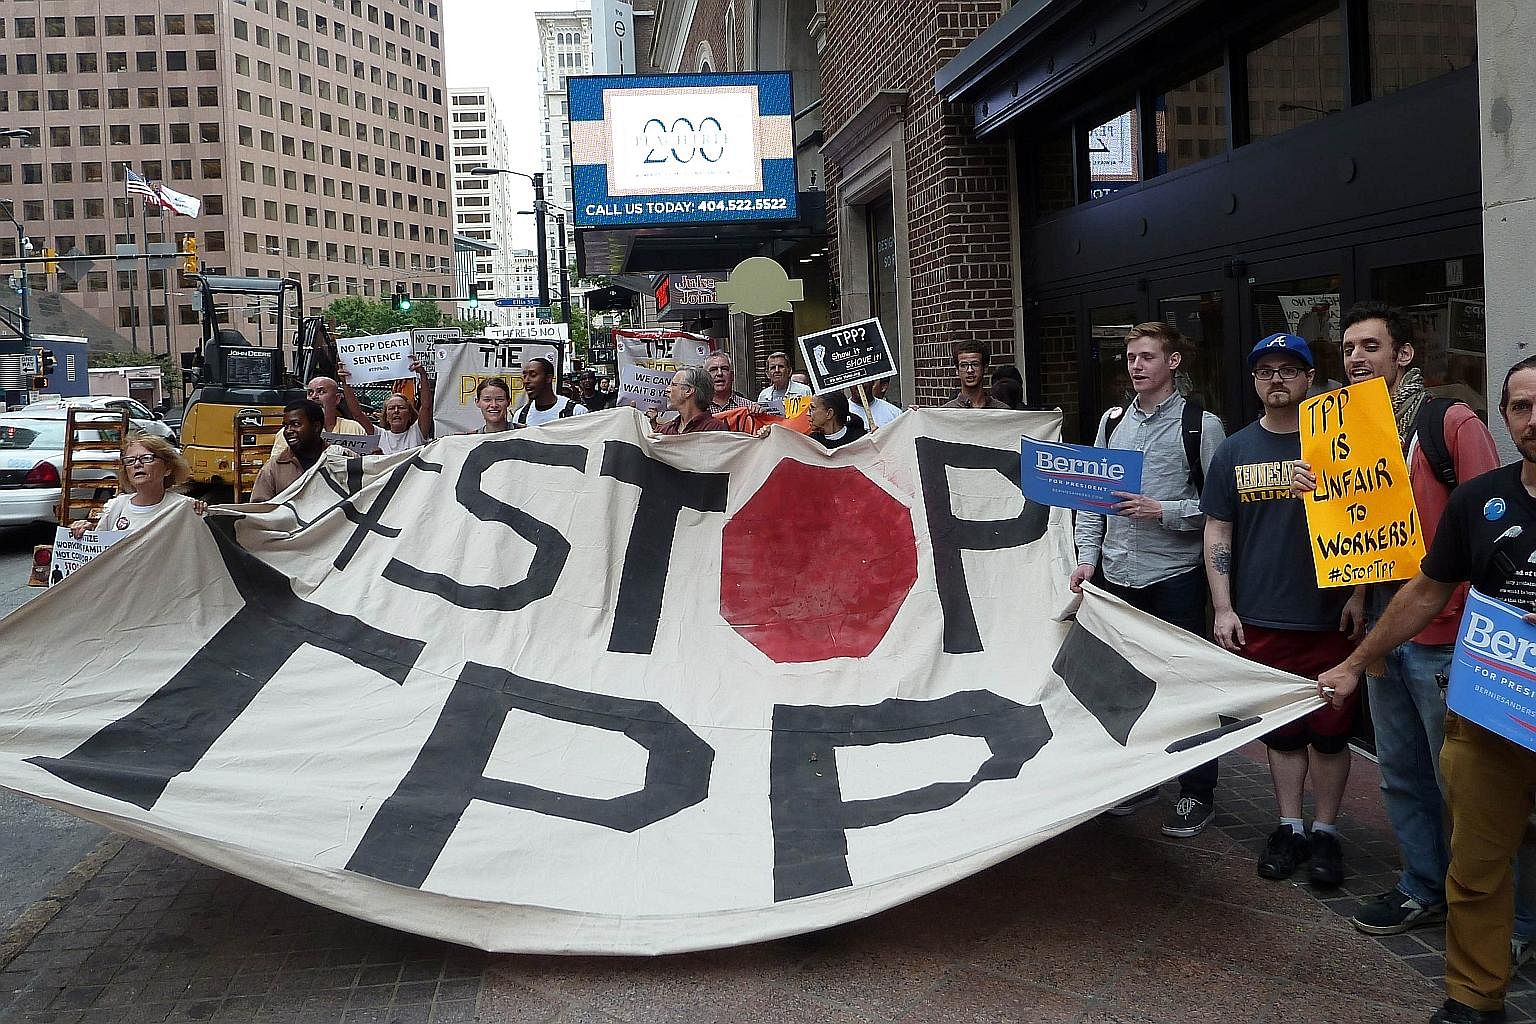 Protesters calling for the rejection of the TPP trade deal in Atlanta last week. Provisions in the TPP make it hard for governments to conduct their basic functions - protecting their citizens' health and safety, ensuring economic stability and safeg